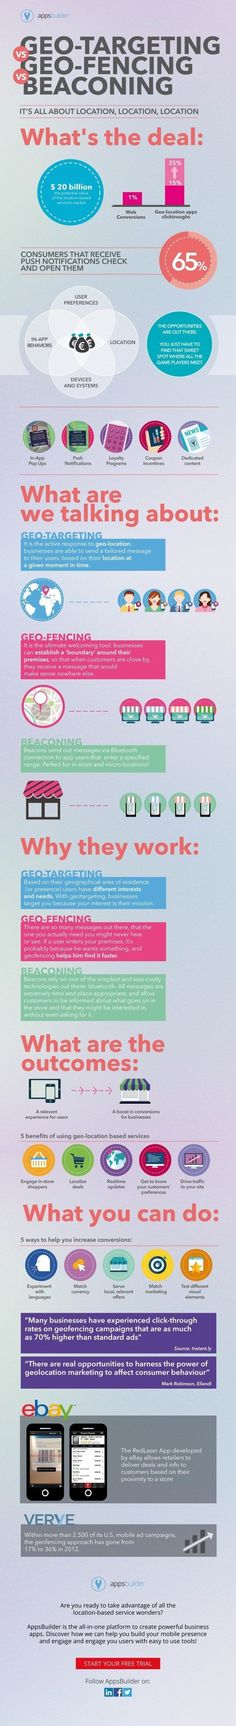 Geo-Targeting vs. Geo-Fencing vs. Beaconing --  Location Based Marketing Infographic  I found this marketing style of Geo-targeting interesting.